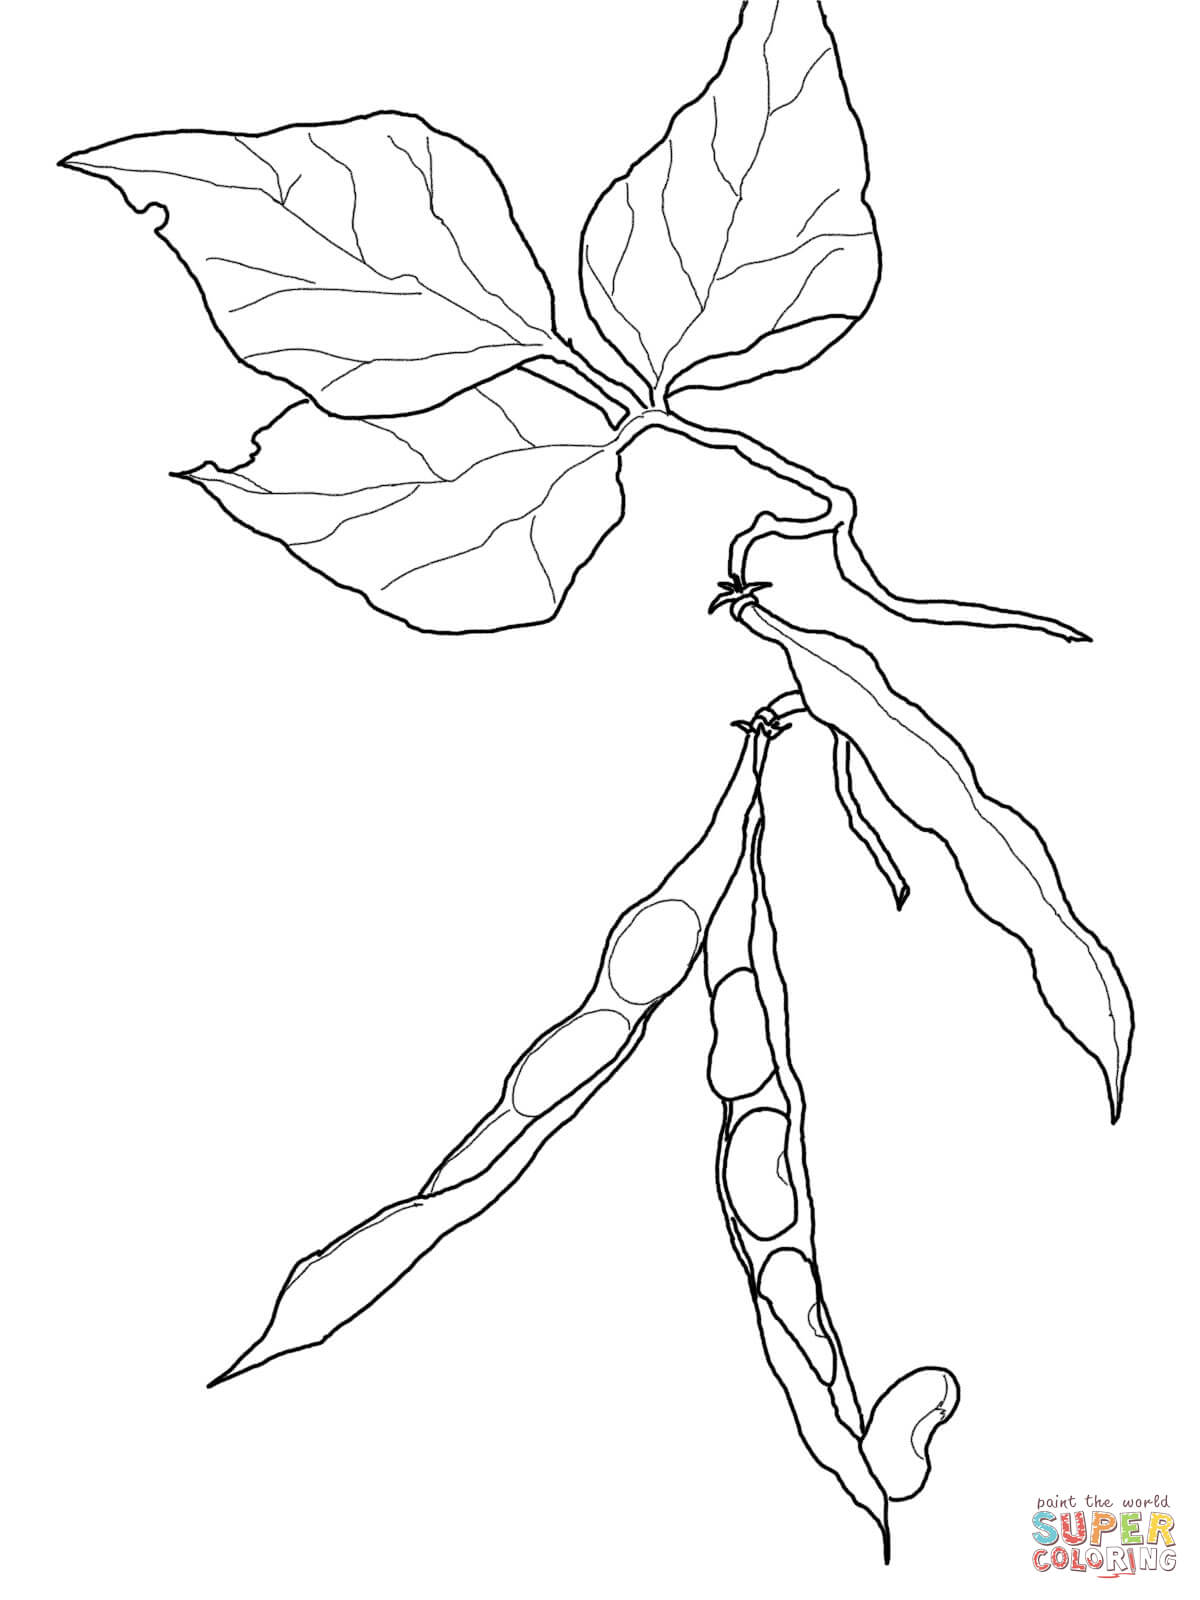 Green Bean coloring page | Free Printable Coloring Pages